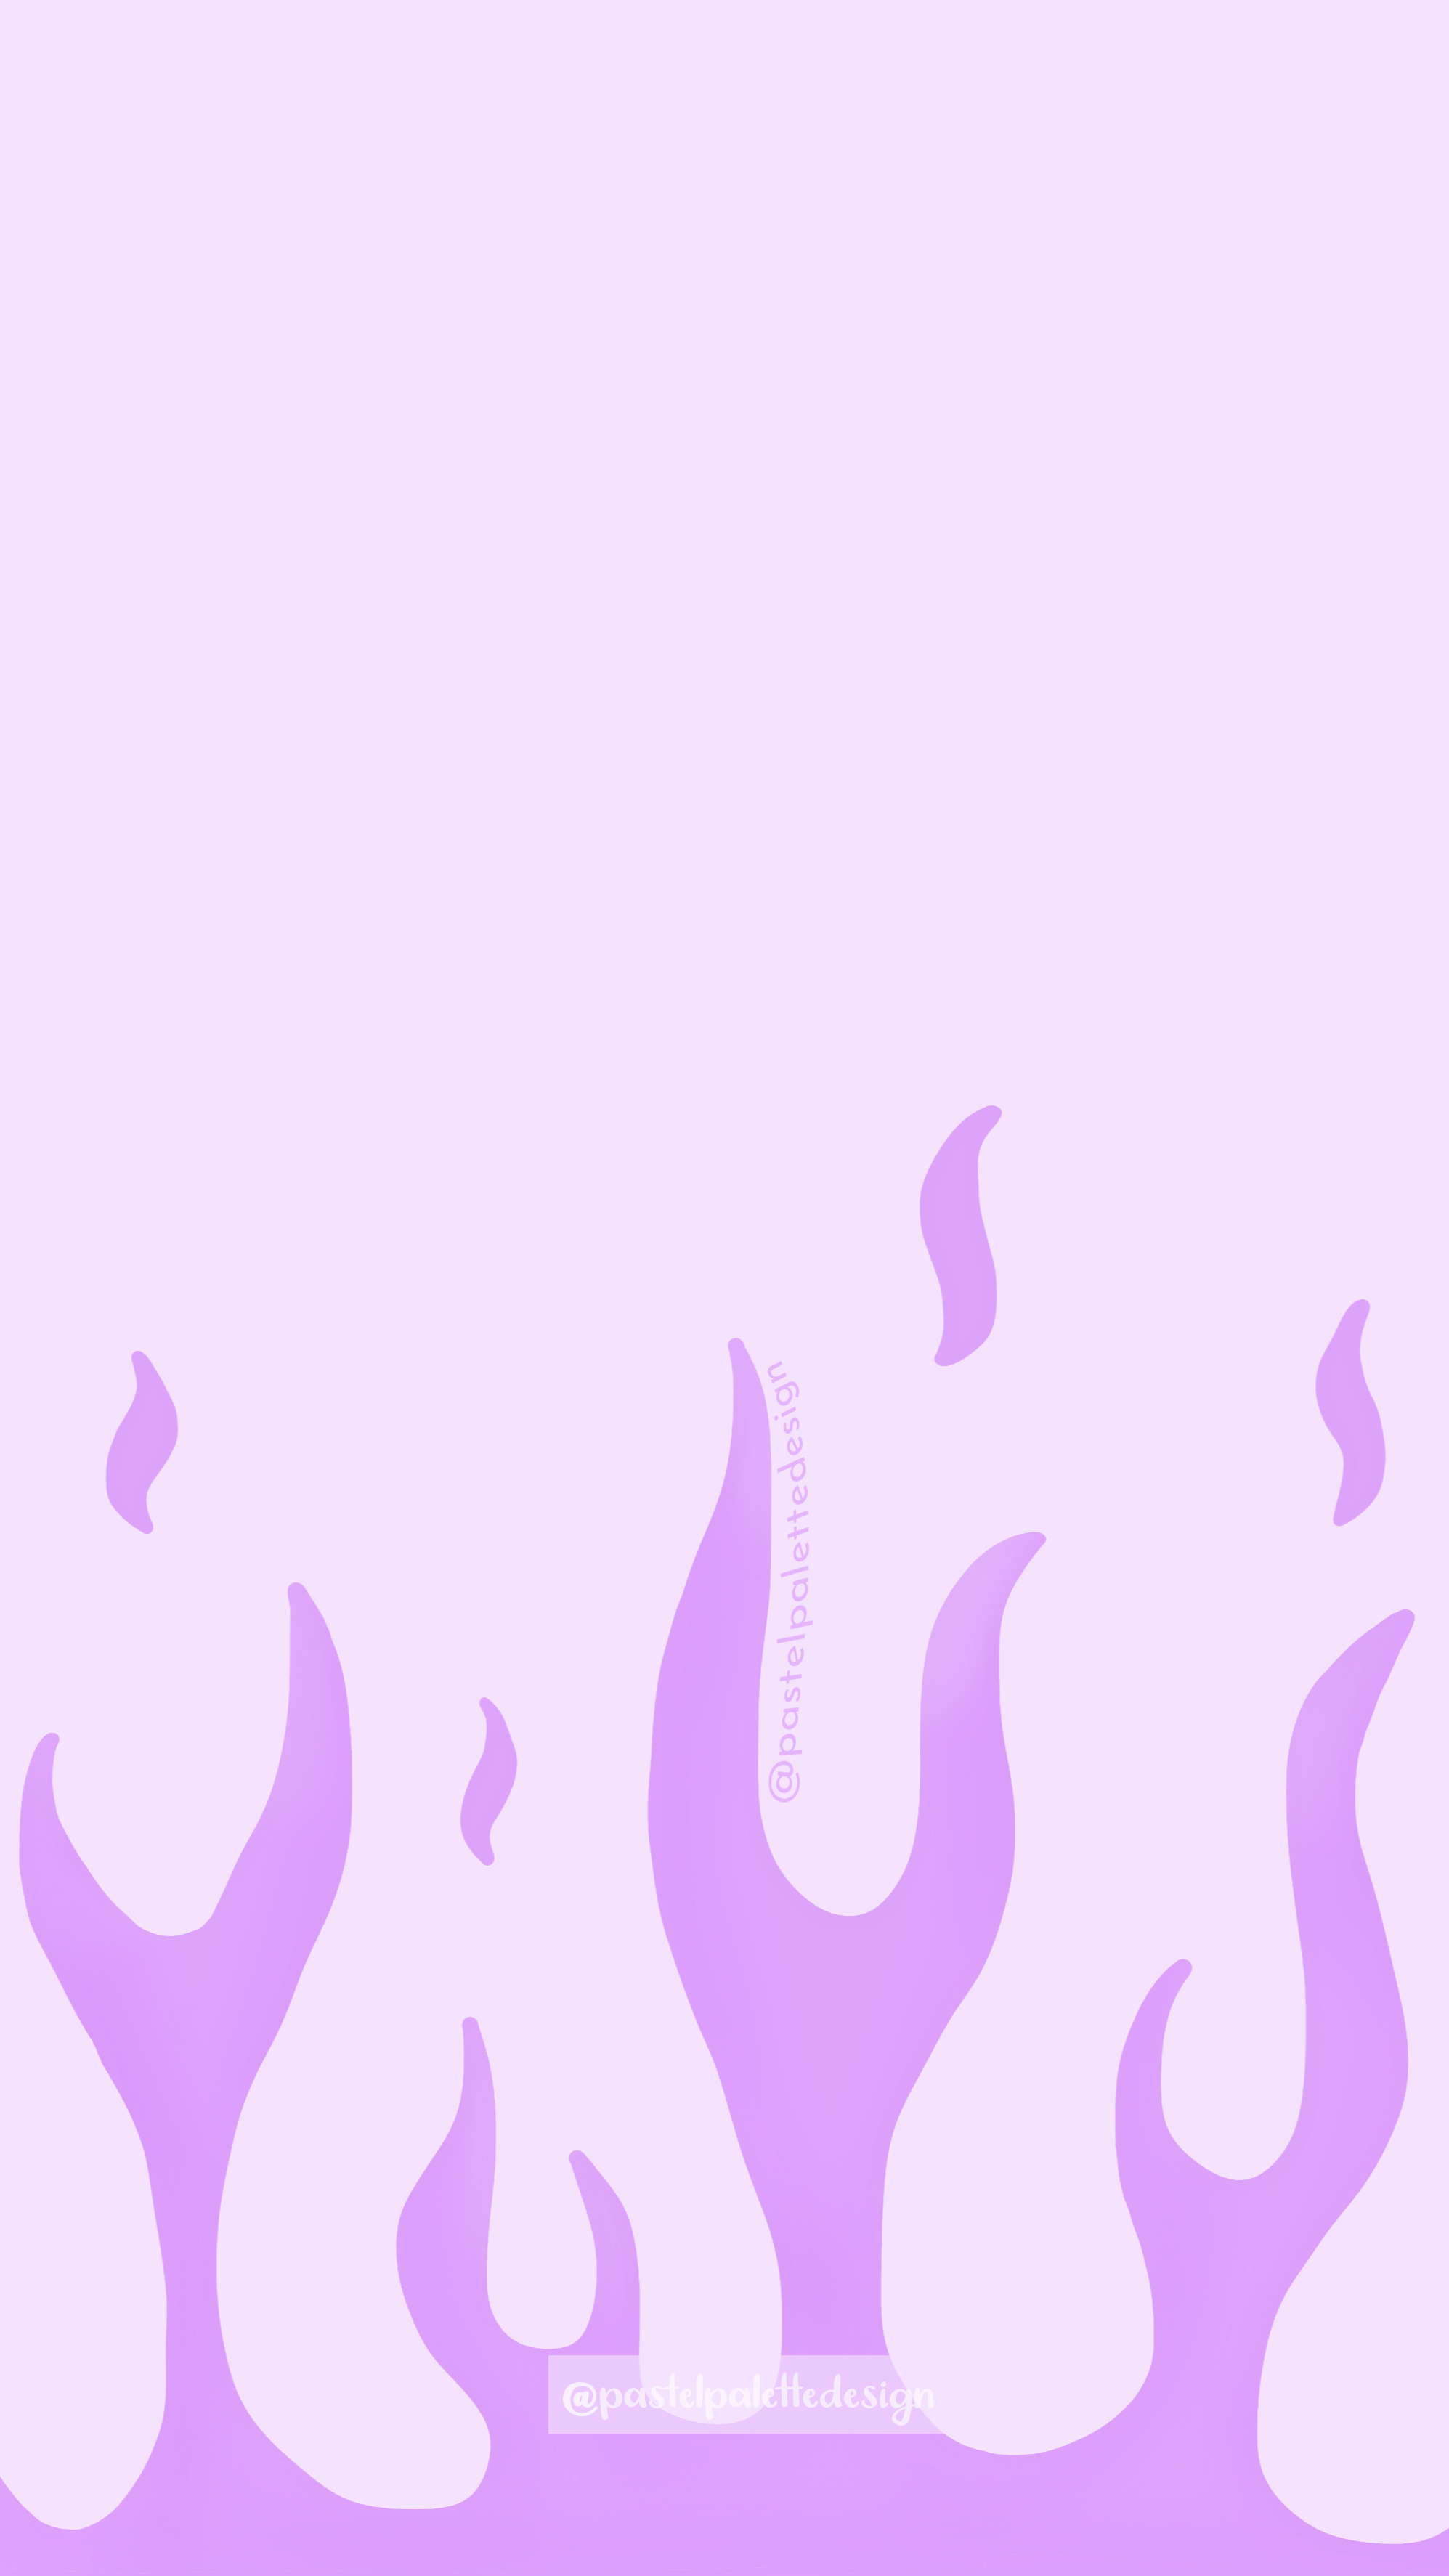 Phone Case Purple Flames Wallpaper Iphone Background Wallpaper Purple Wallpaper Iphone Wallpaper Girly